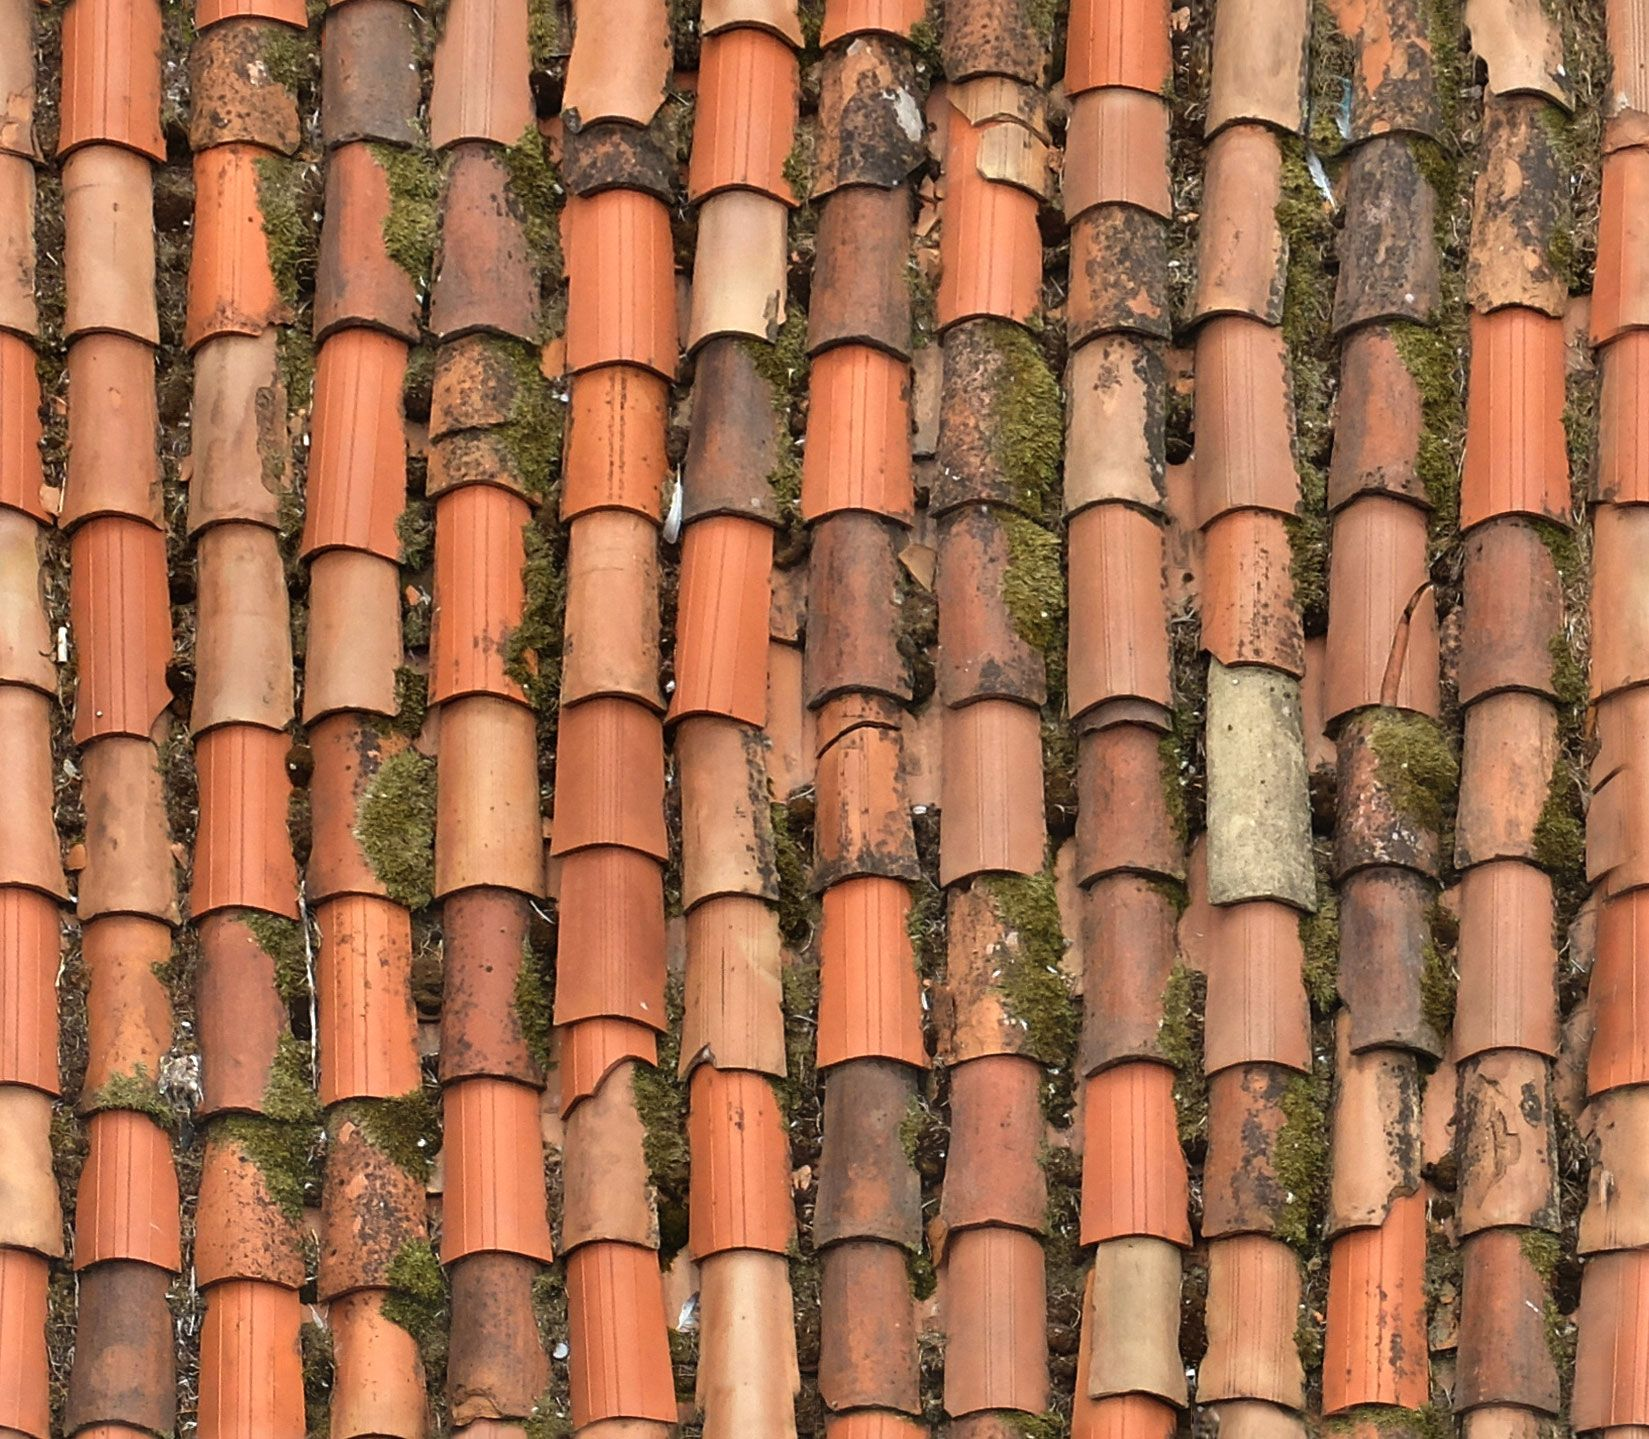 Old roof tiles architextures pinterest roof tiles old roof tiles architextures dailygadgetfo Choice Image